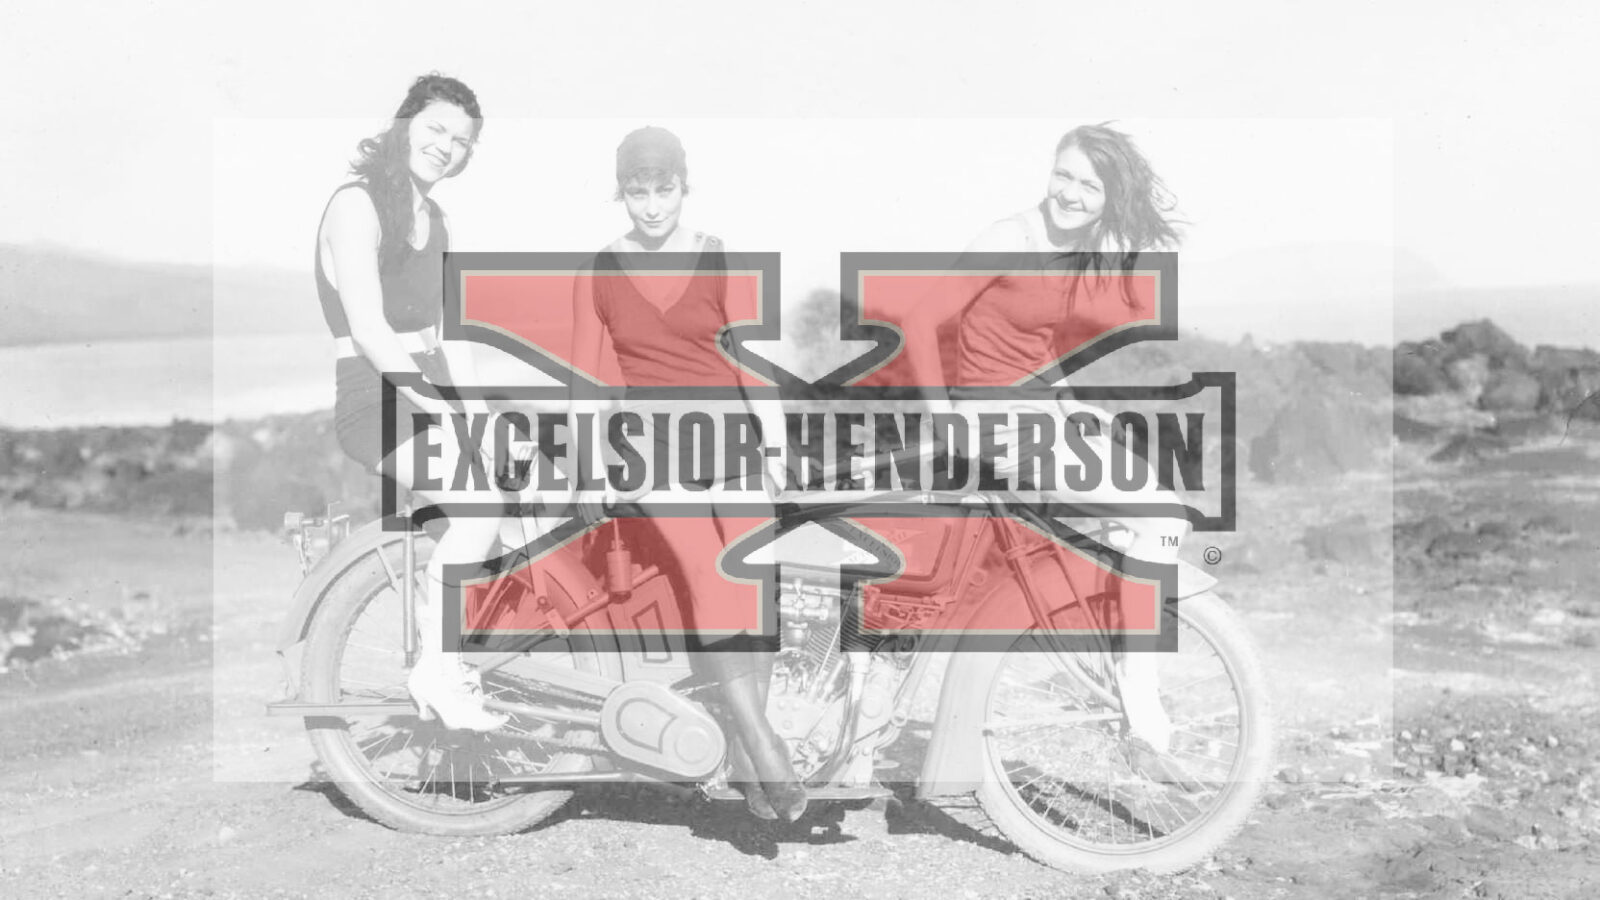 Excelsior Henderson Logo 1600x900 - Buy The Excelsior-Henderson Motorcycle Brand